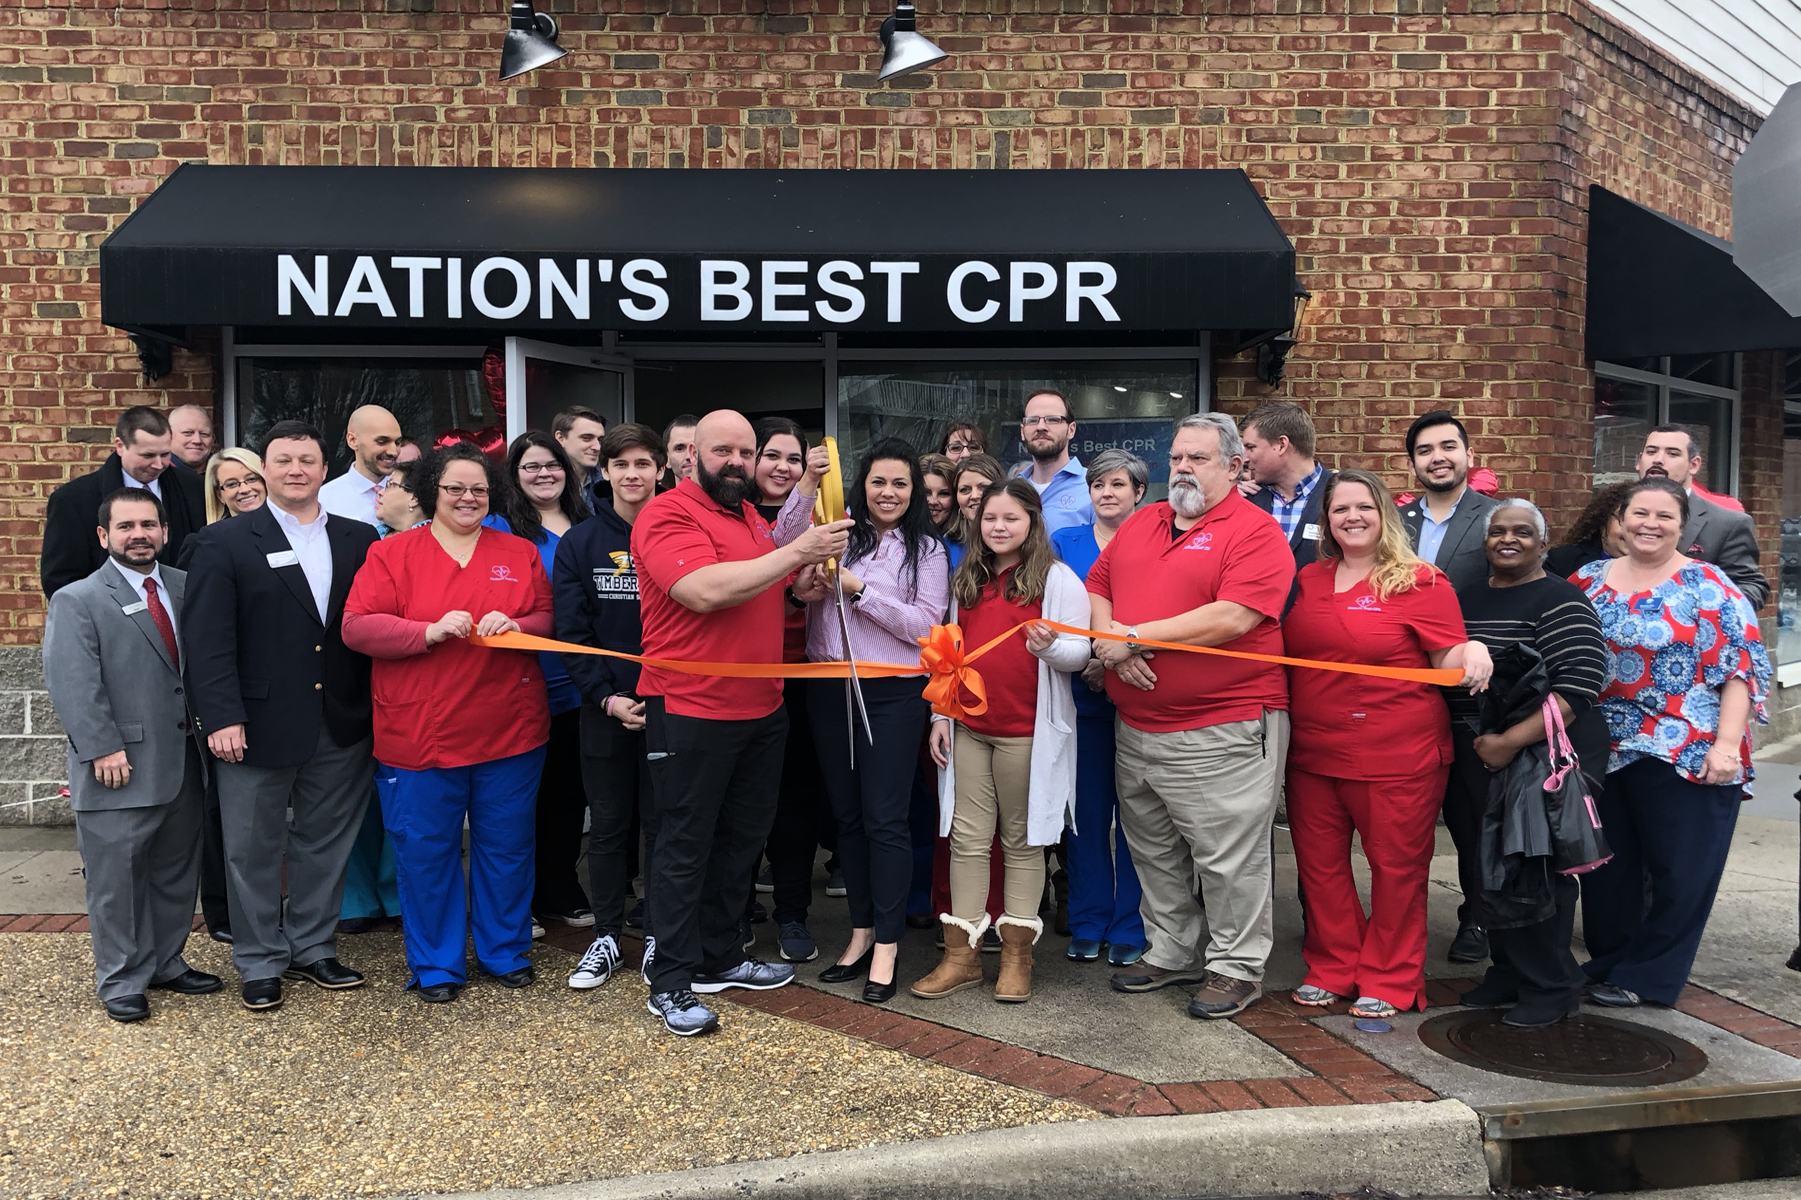 Nations Best CPR